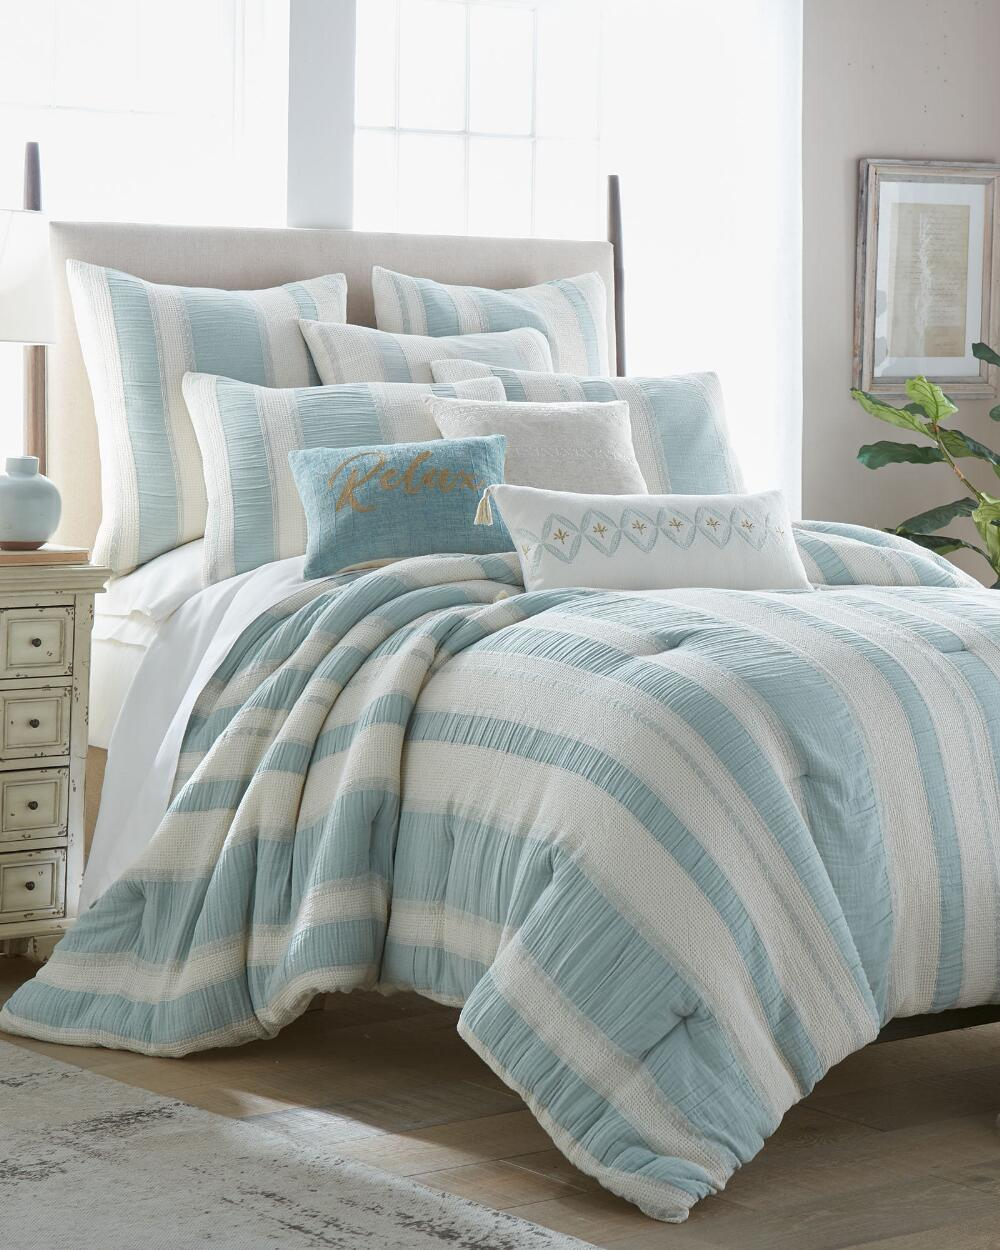 Exclusively Ours 3 Piece Cirrus Comforter Collection Comforters Bedding Bed Bath Stein Mart In 2020 Comforter Sets Blue Comforter Sets King Comforter Sets